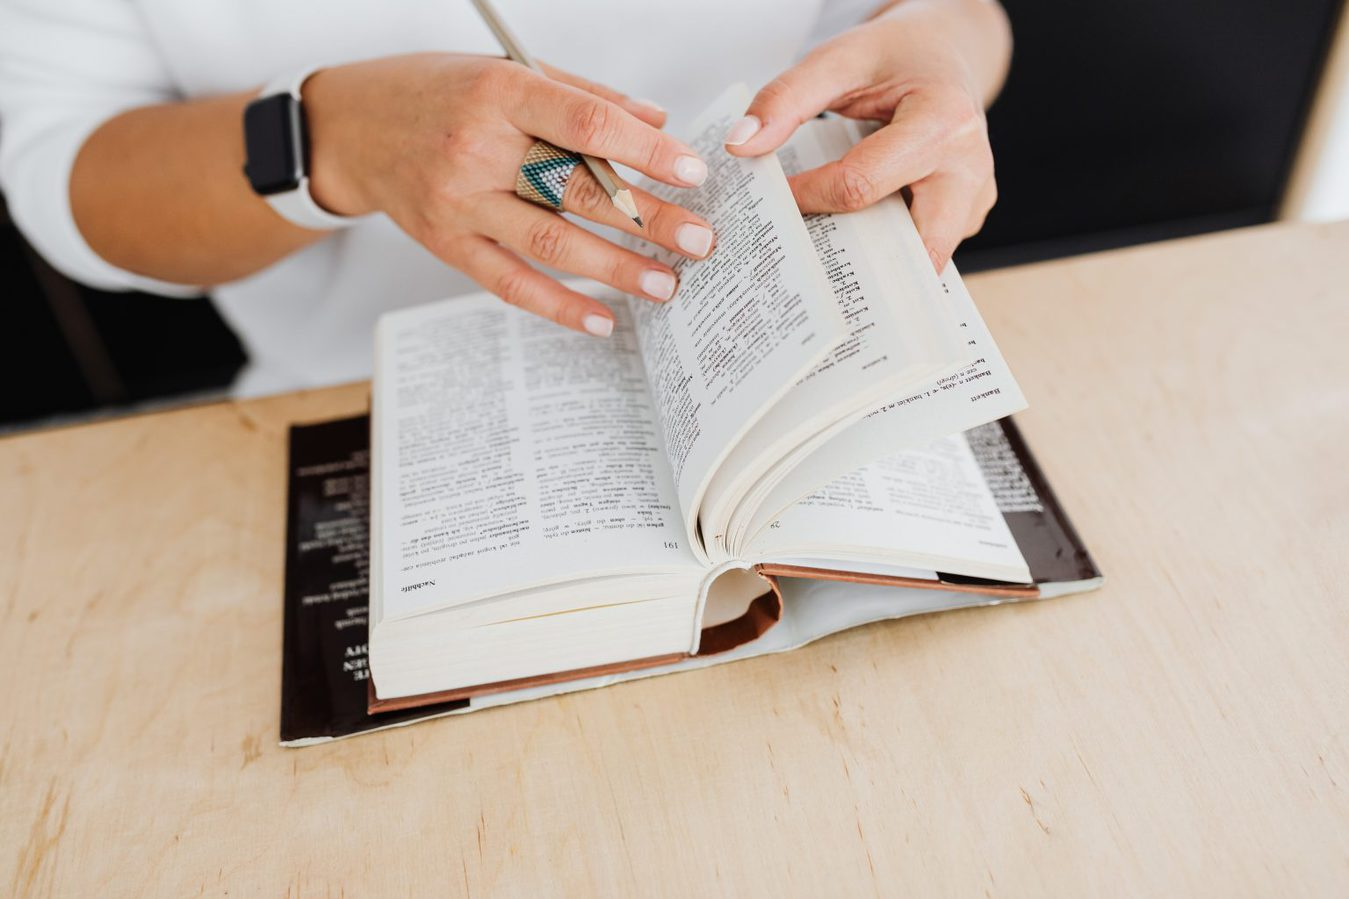 woman's hands flicking through dictionary